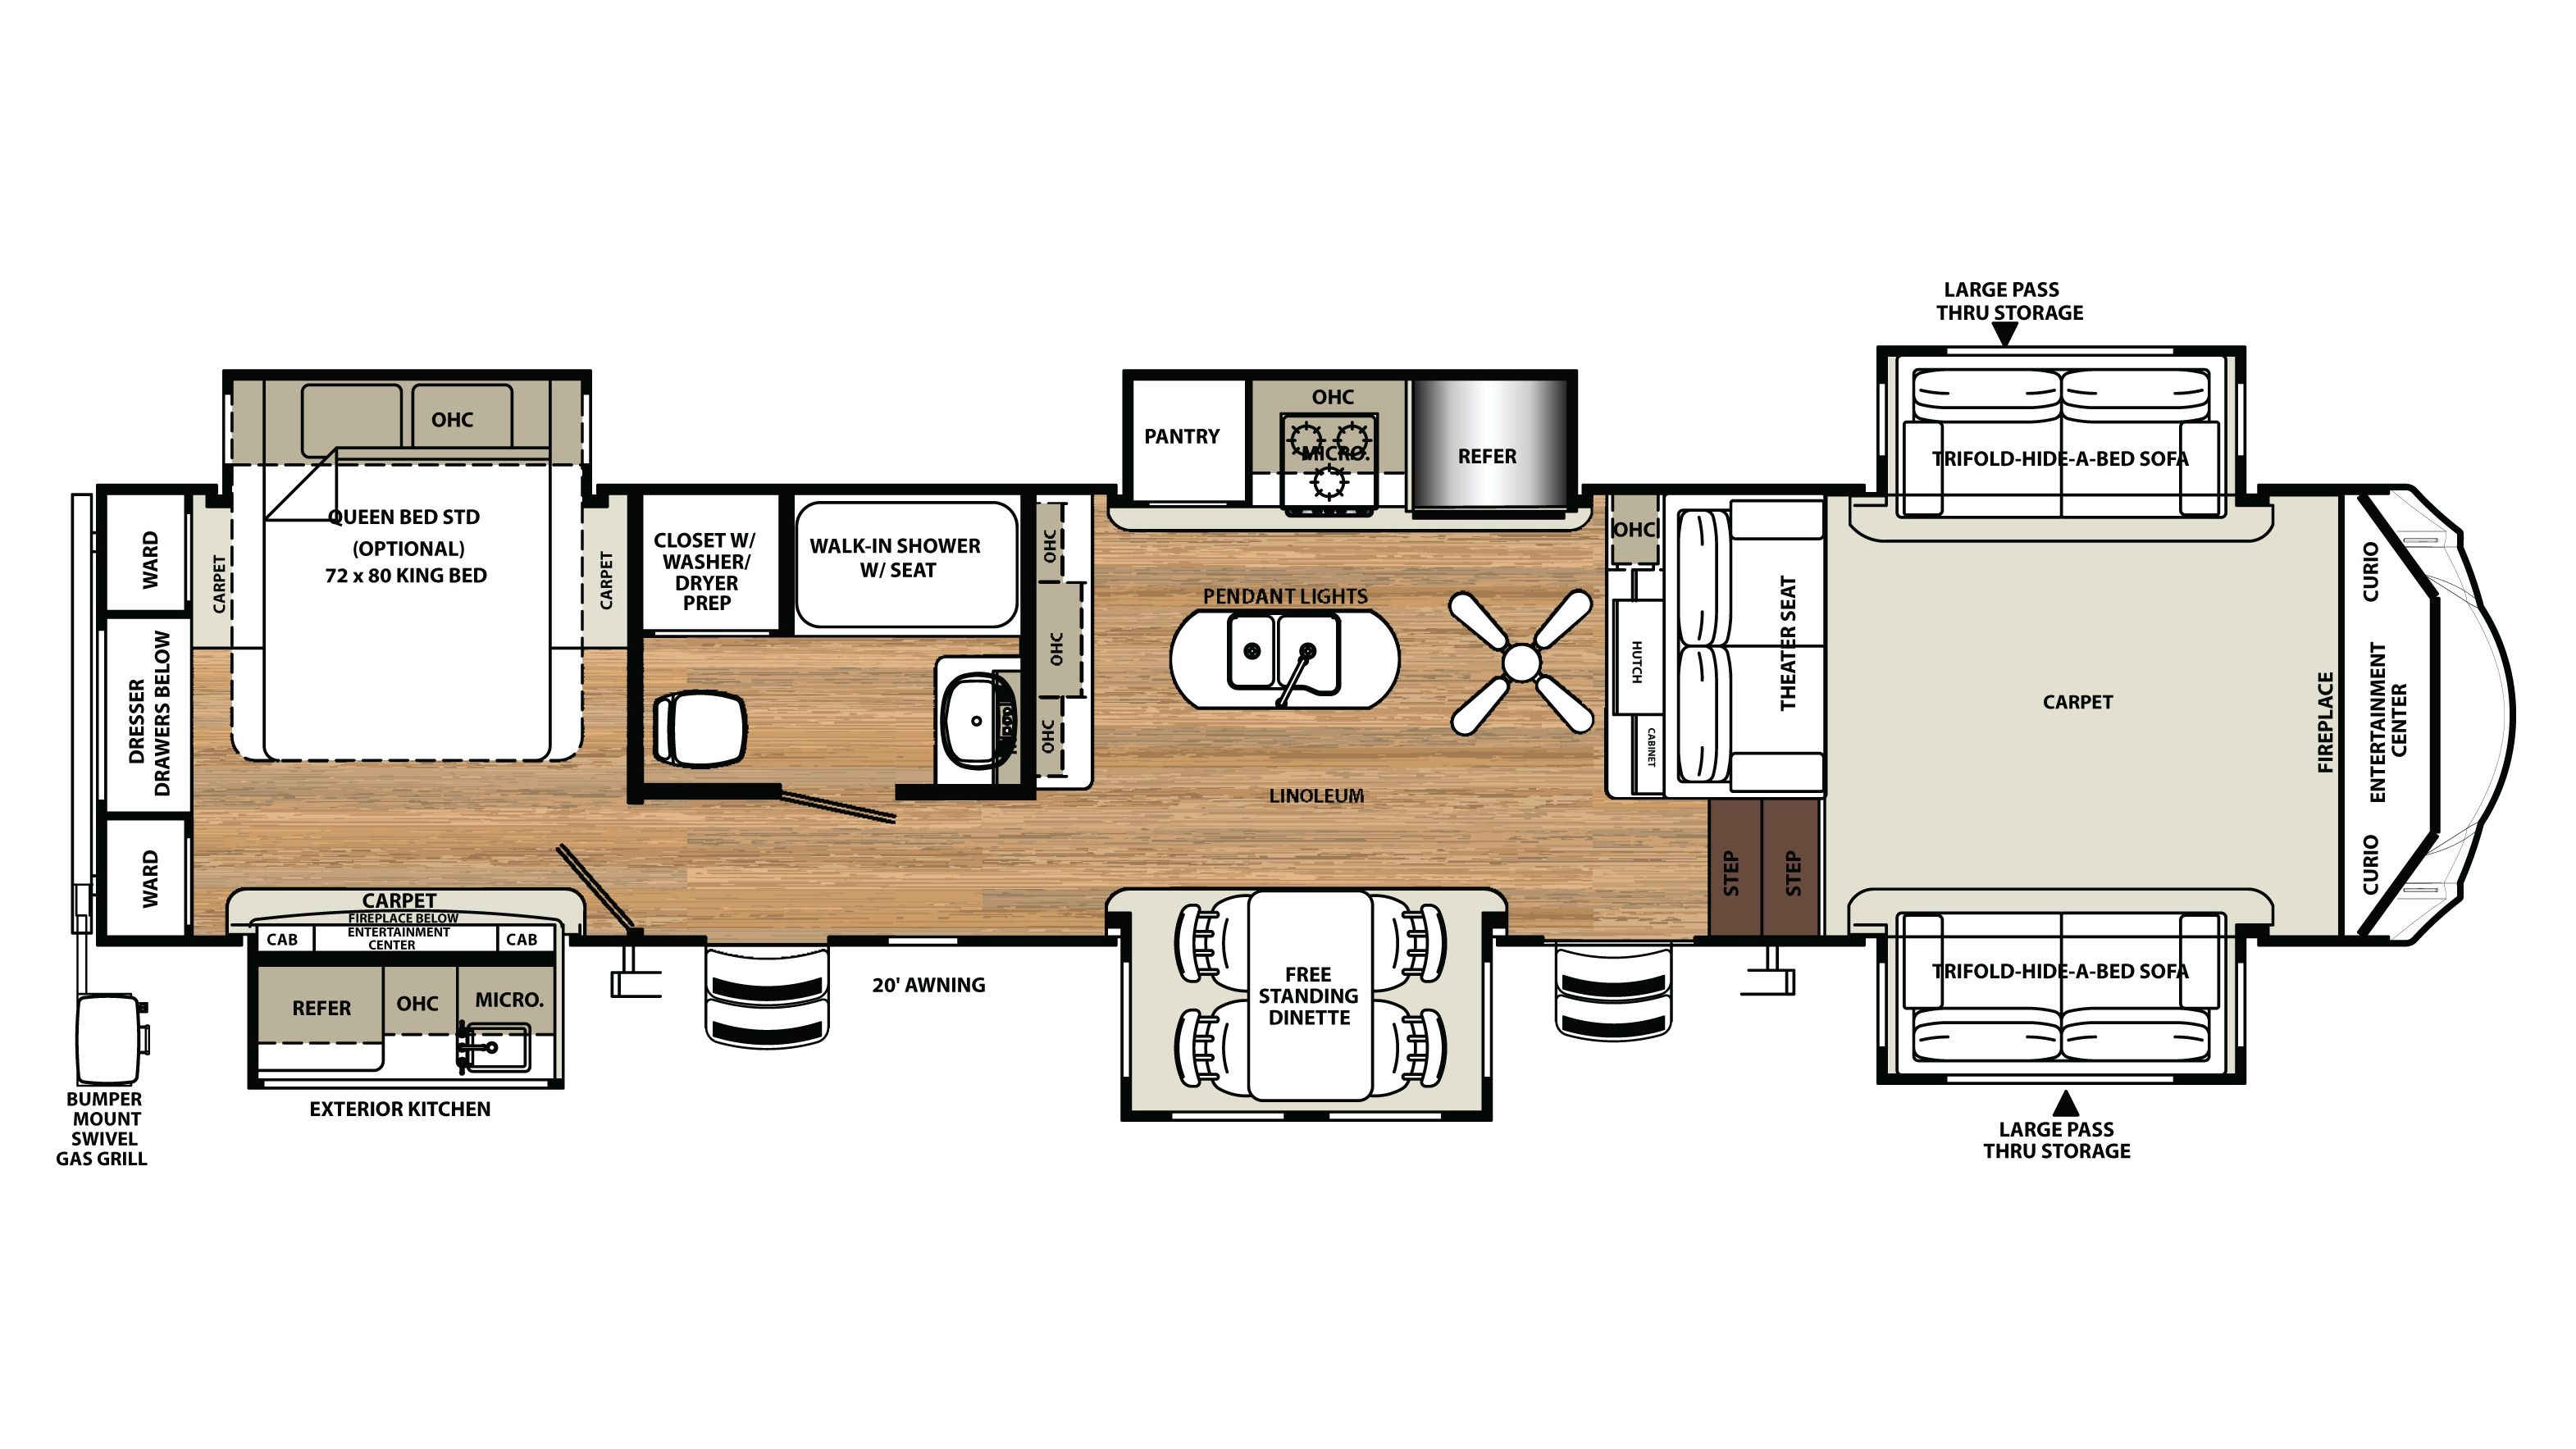 sandpiper 5th wheel rv floor plans patterns of a real 7 pin trailer wiring diagram with brakes sandpiper wiring diagram structure